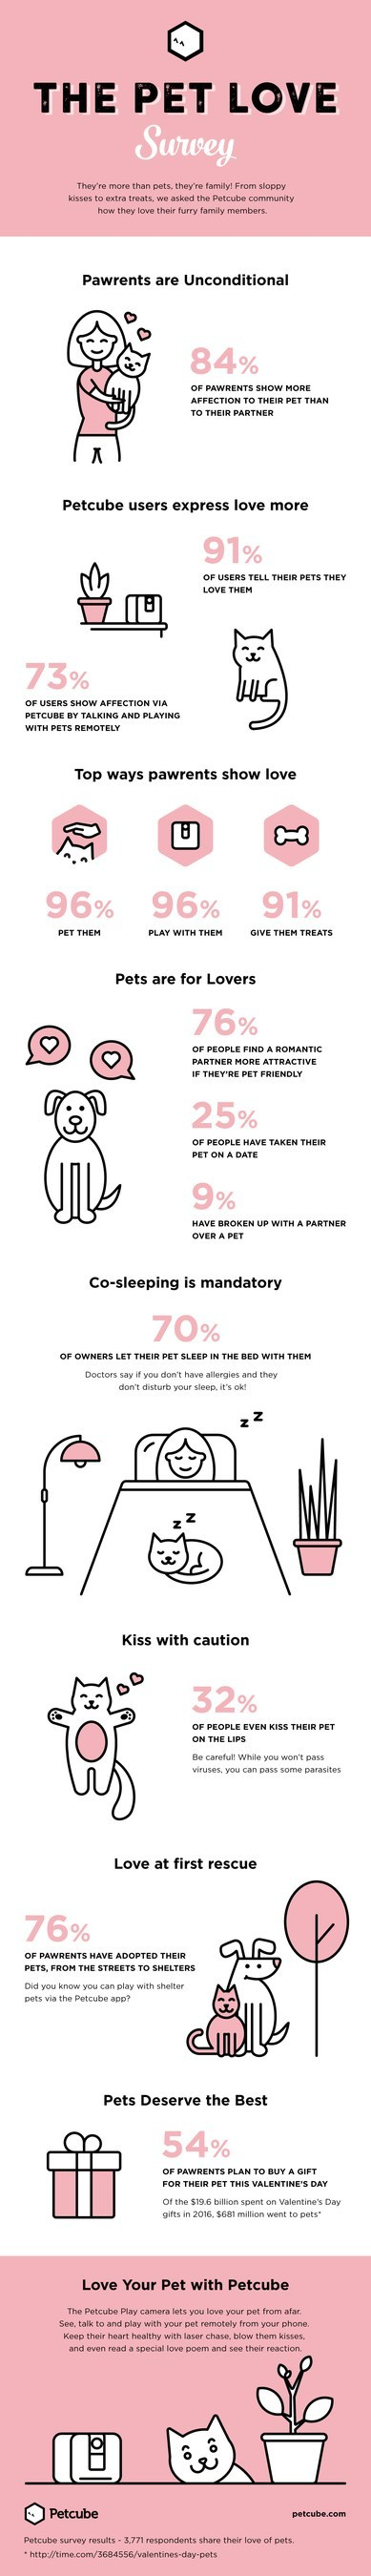 Pets are loving parts of the family! But how much do we show them love? How important are they to our relationships? Petcube found out with its first-ever survey of pet love! This infographic presents results, including that 84% of people show their pet more love than their romantic partner, 54% of people plan to buy their pets a gift for V-Day, and 76% of people find a romantic partner more attractive if they're pet friendly.